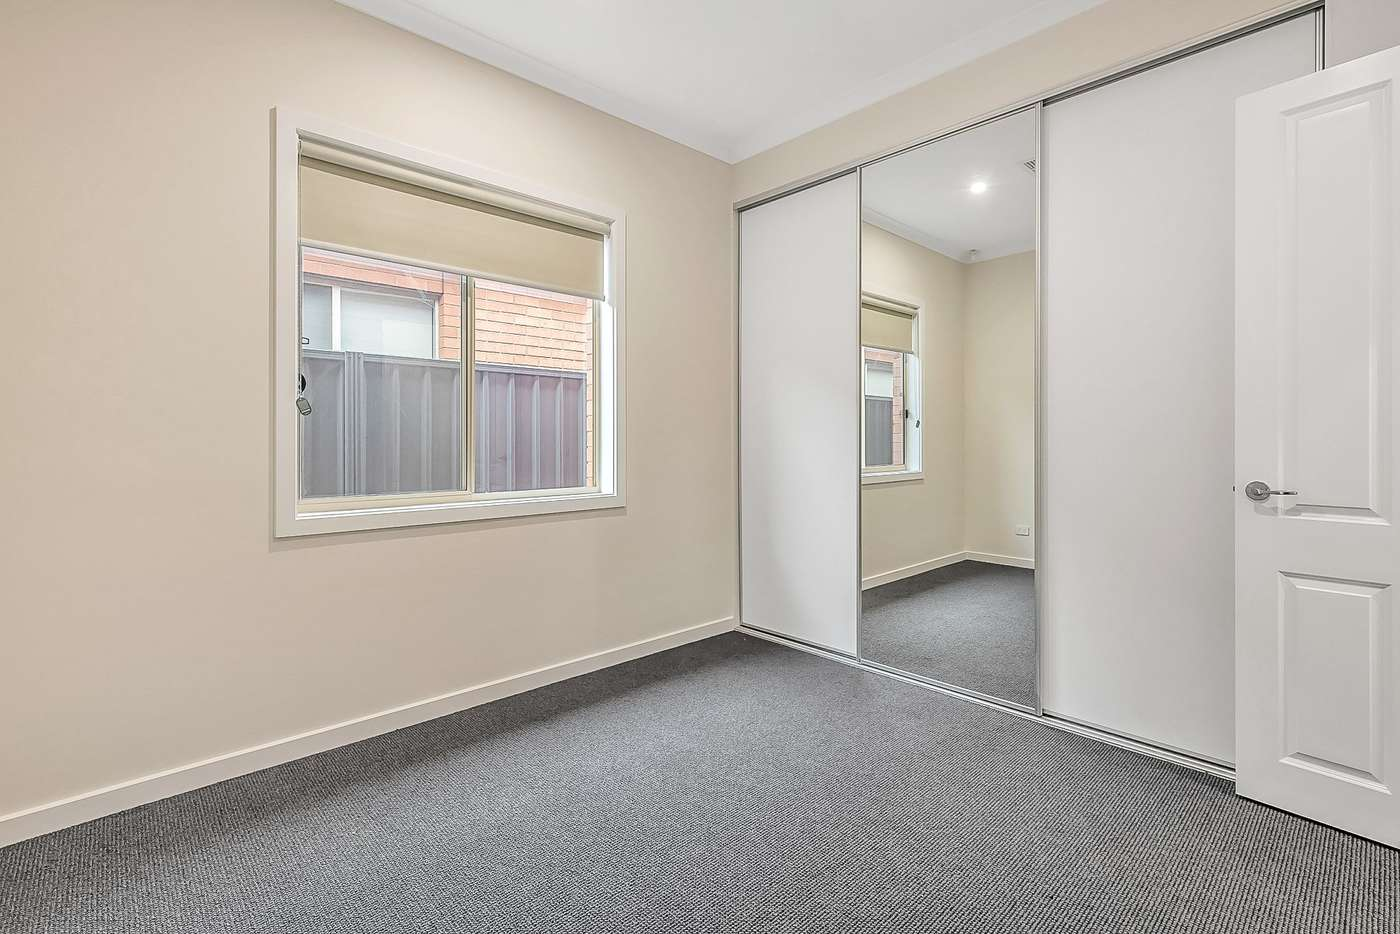 Seventh view of Homely house listing, 29 Tarragon Street, Mile End SA 5031